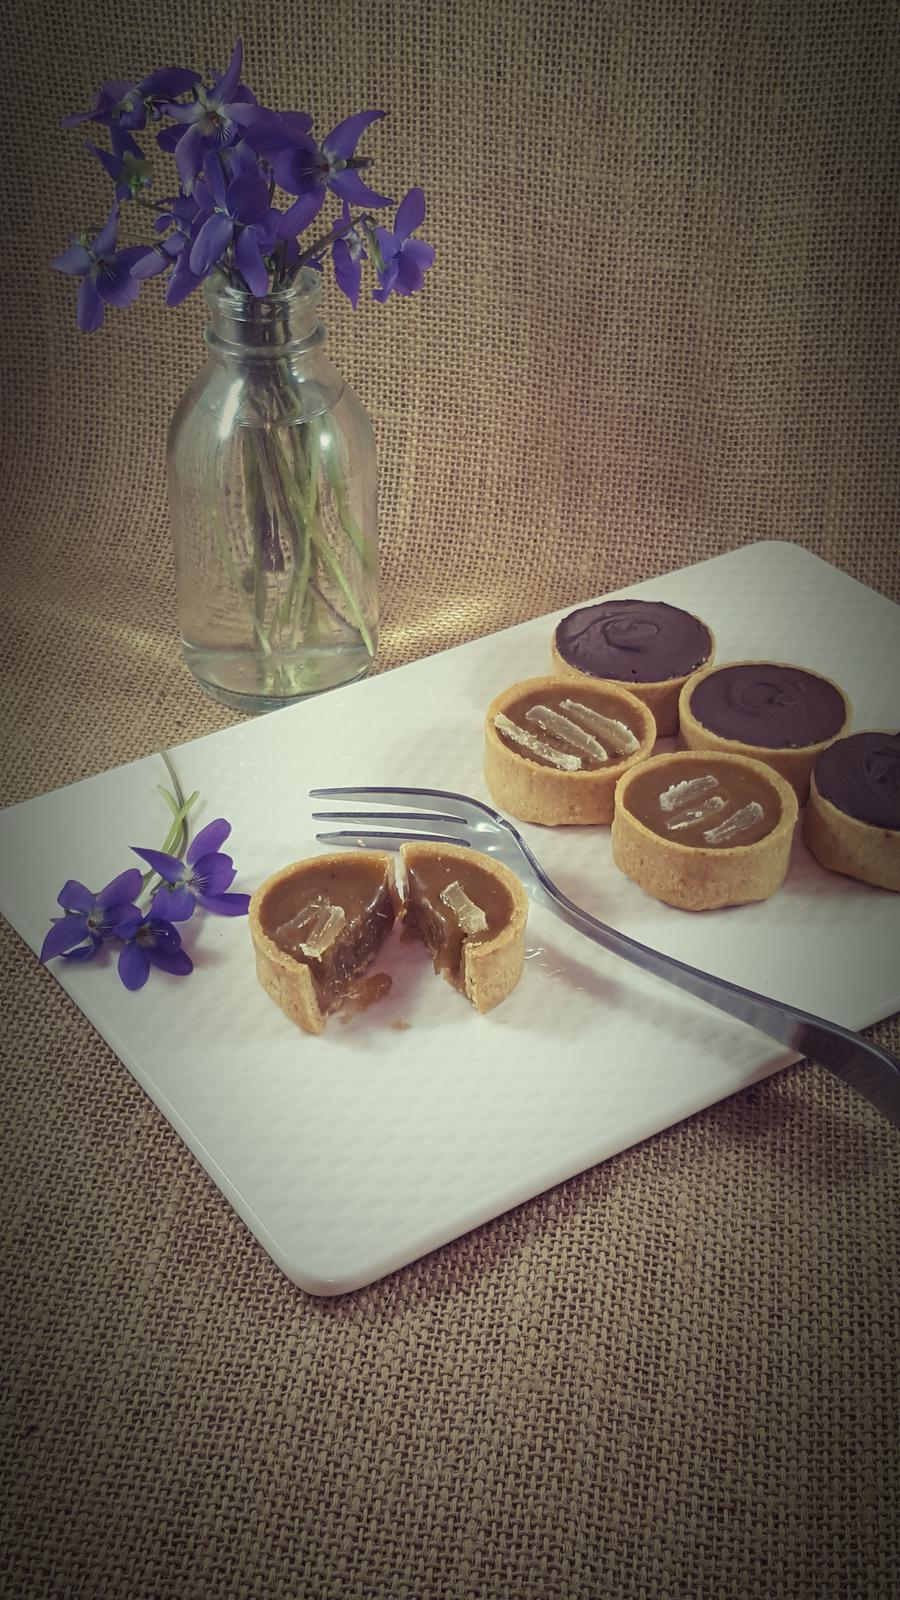 Choc caramel and Ginger tarts